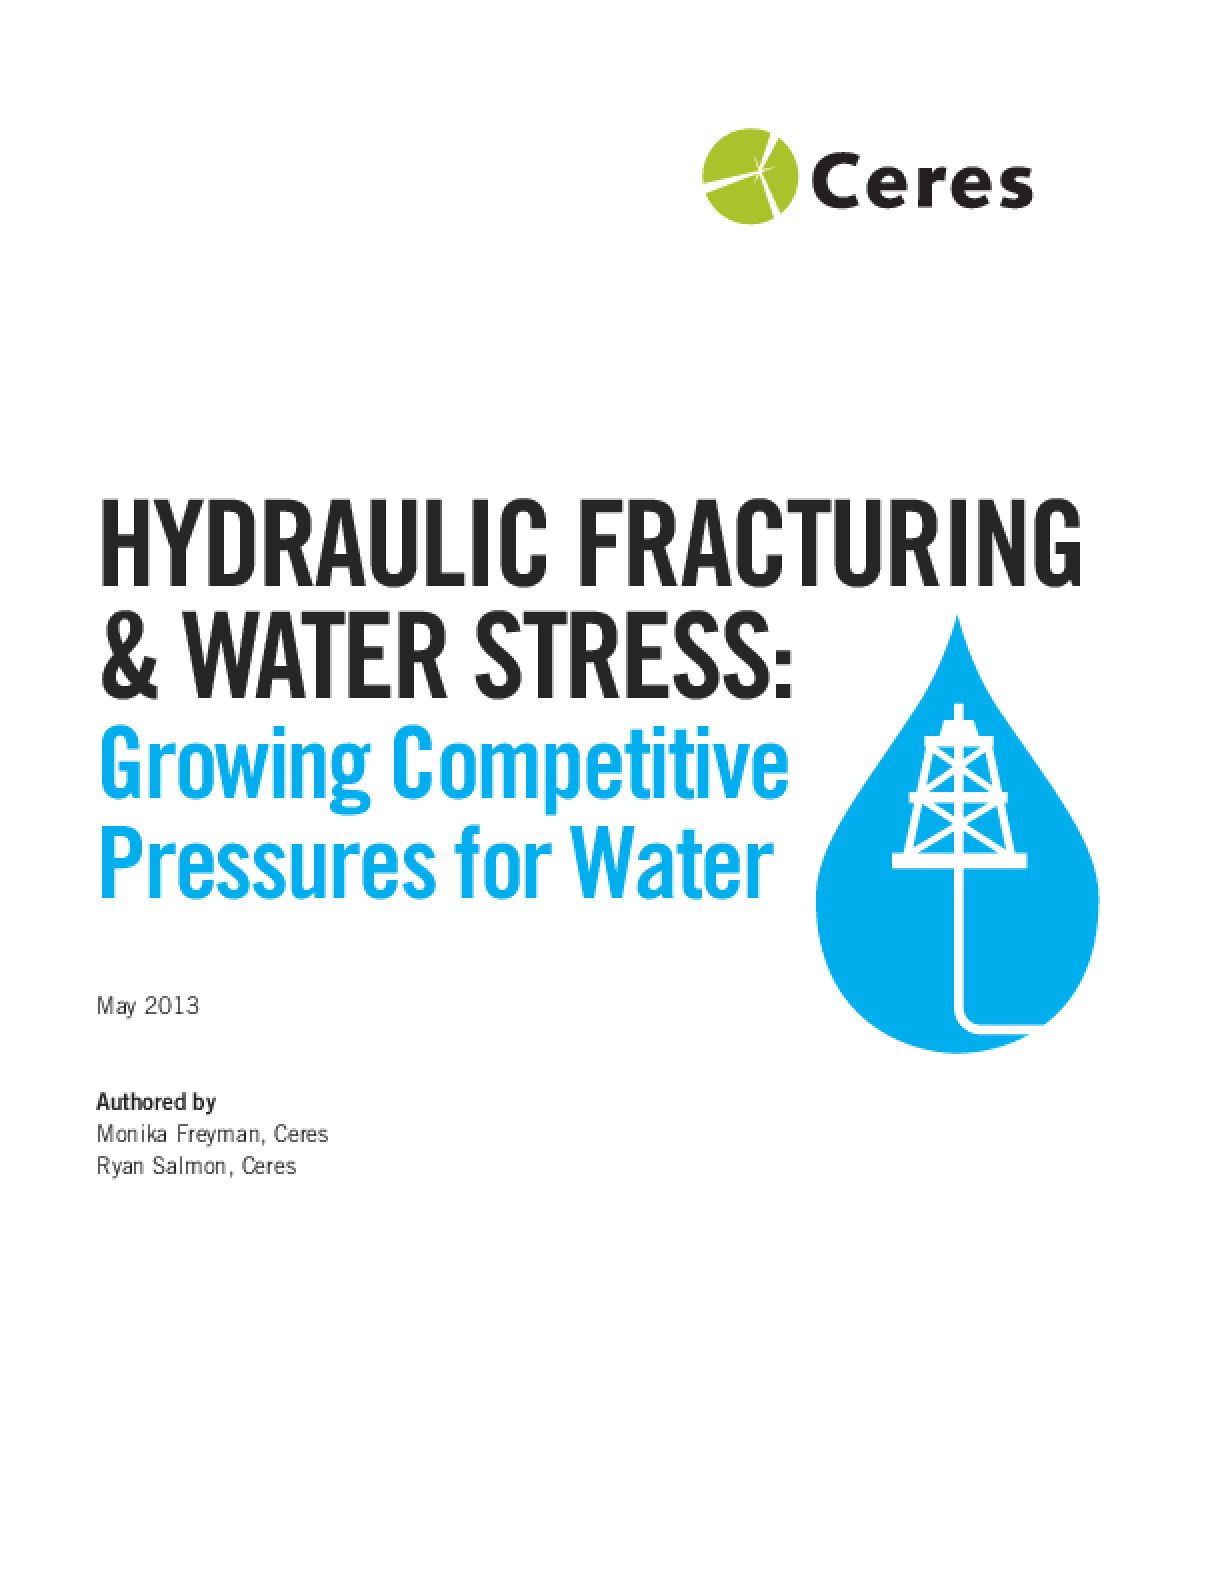 Hydraulic Fracturing & Water Stress: Growing Competitive Pressures for Water